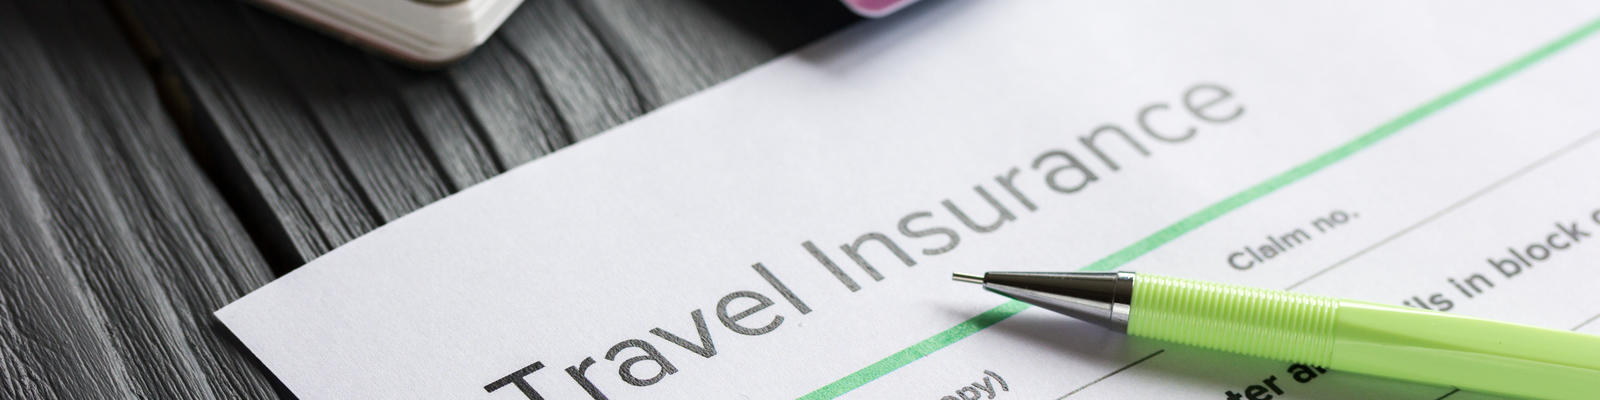 Learn all about cruise travel insurance (Photo: 279photo Studio/Shutterstock)